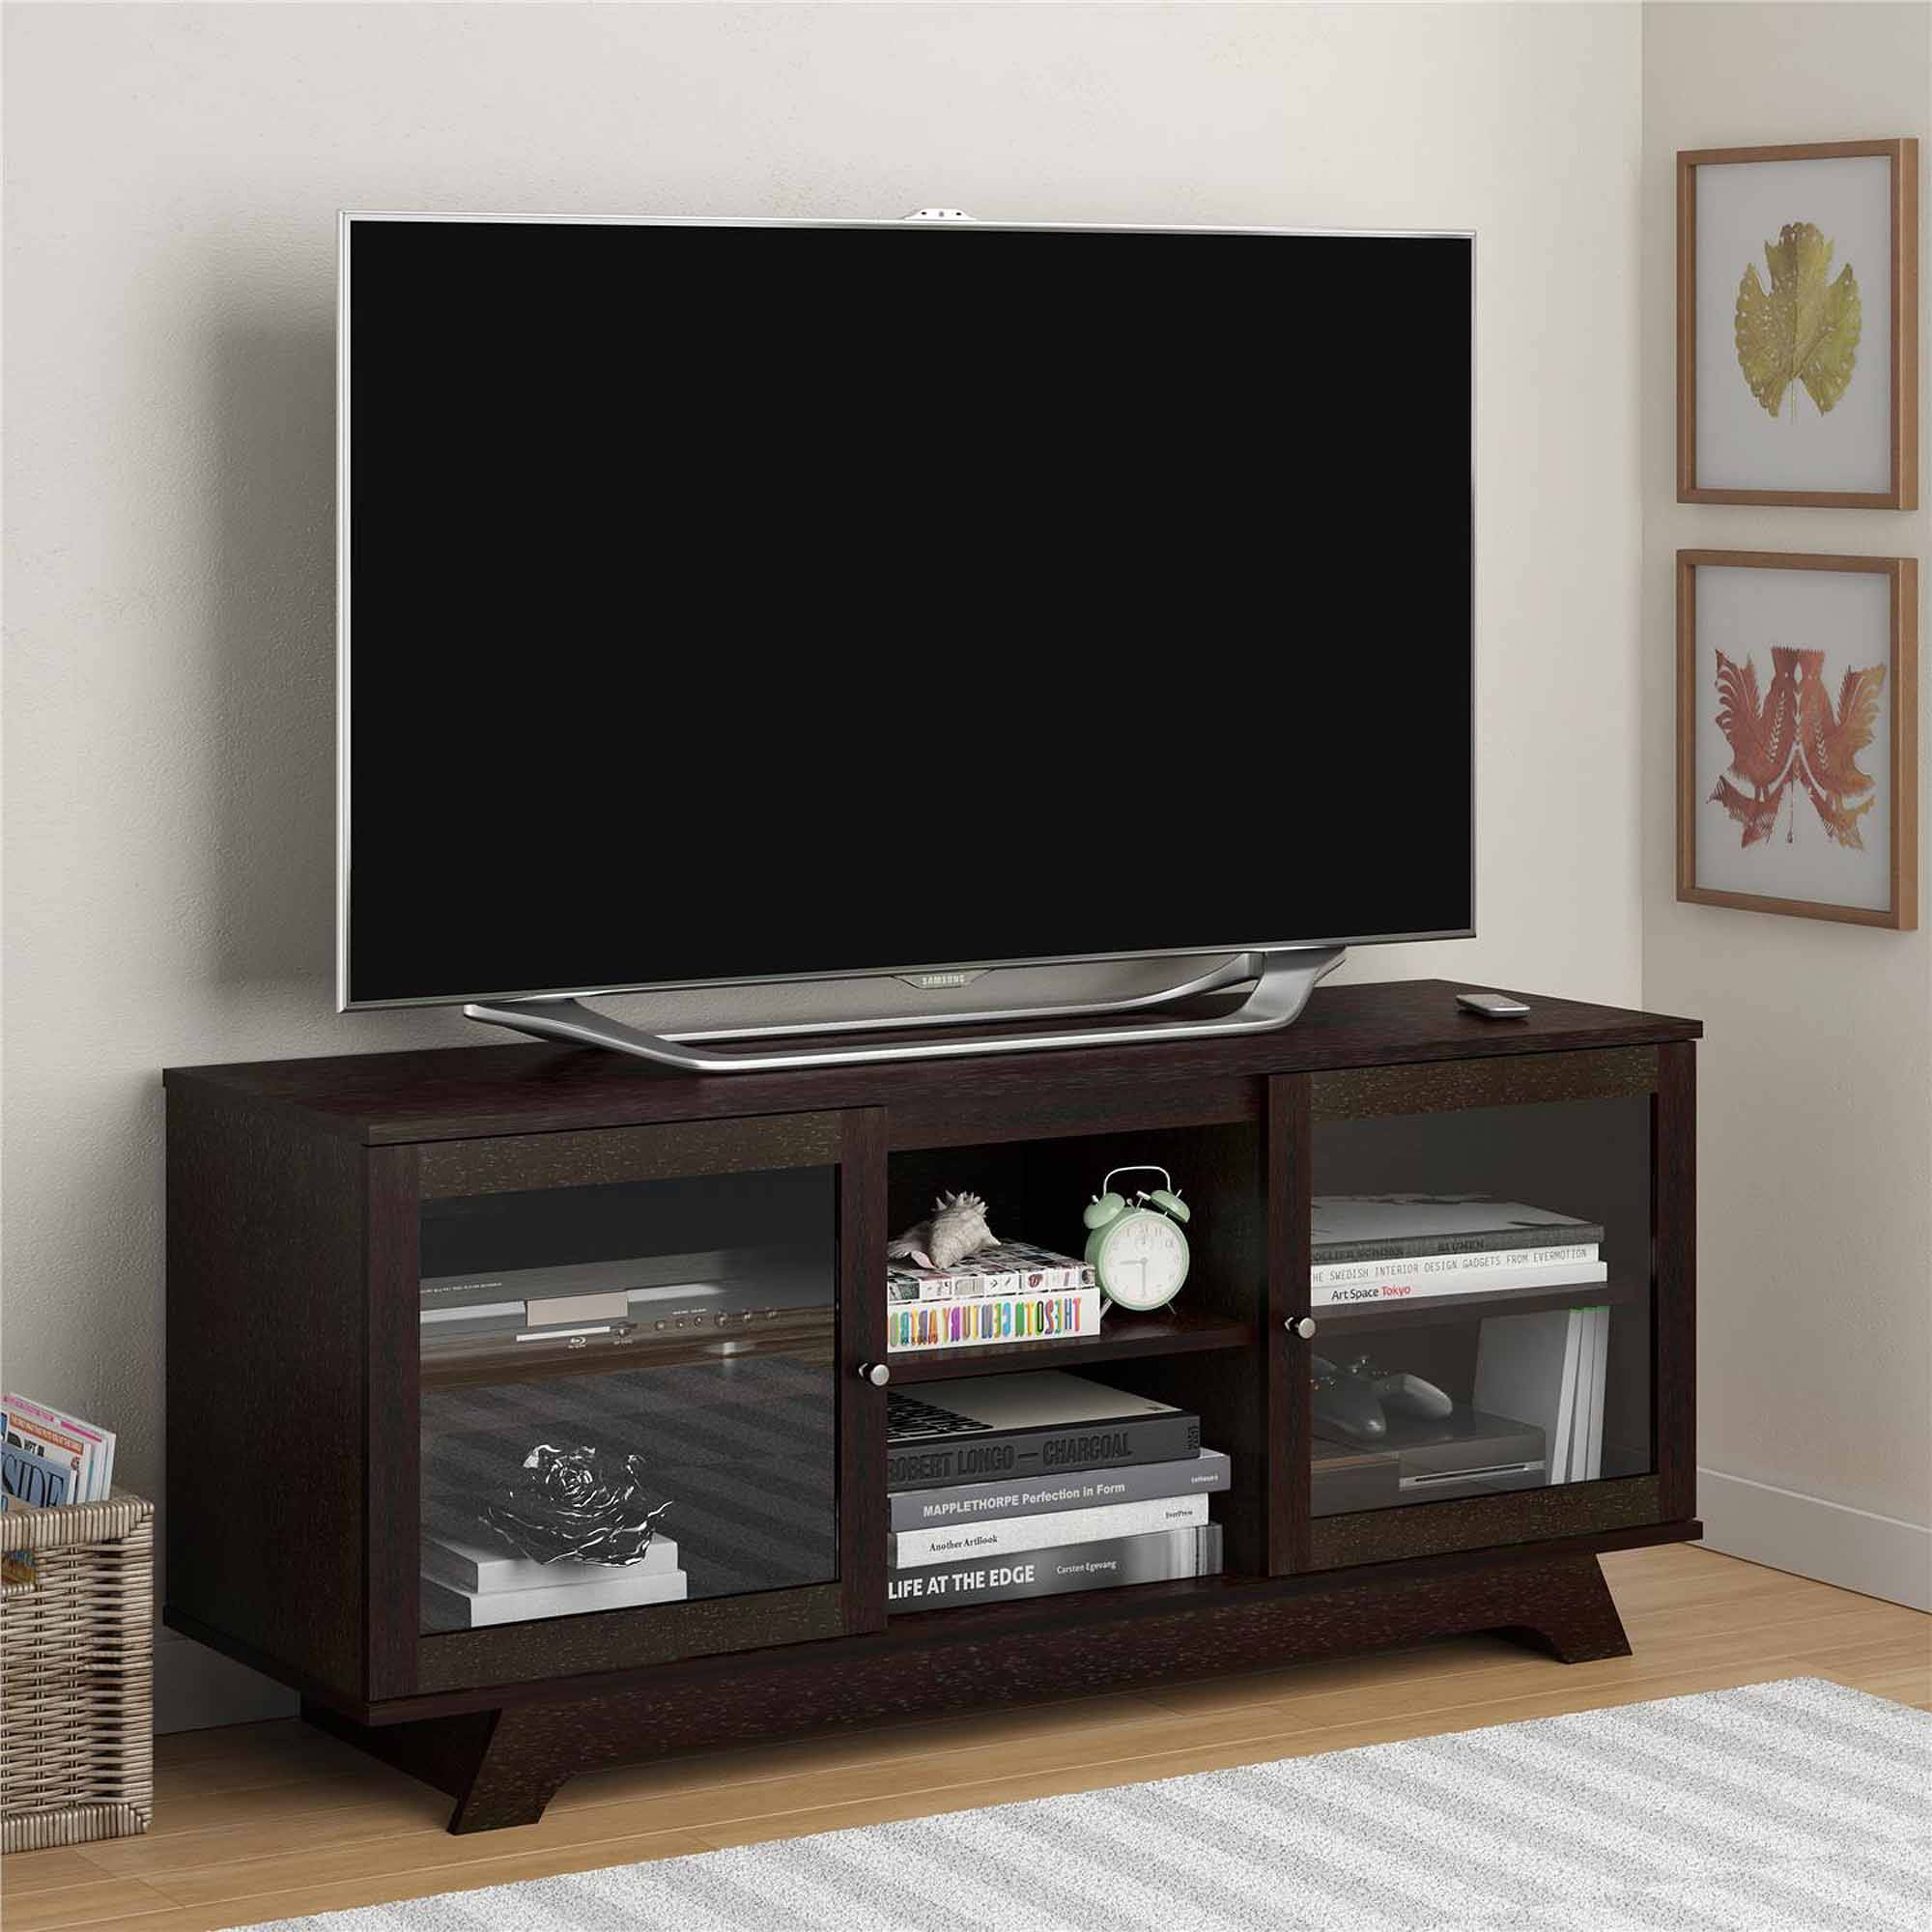 Tv Stands & Entertainment Centers - Walmart for Entertainment Center Tv Stands (Image 7 of 15)